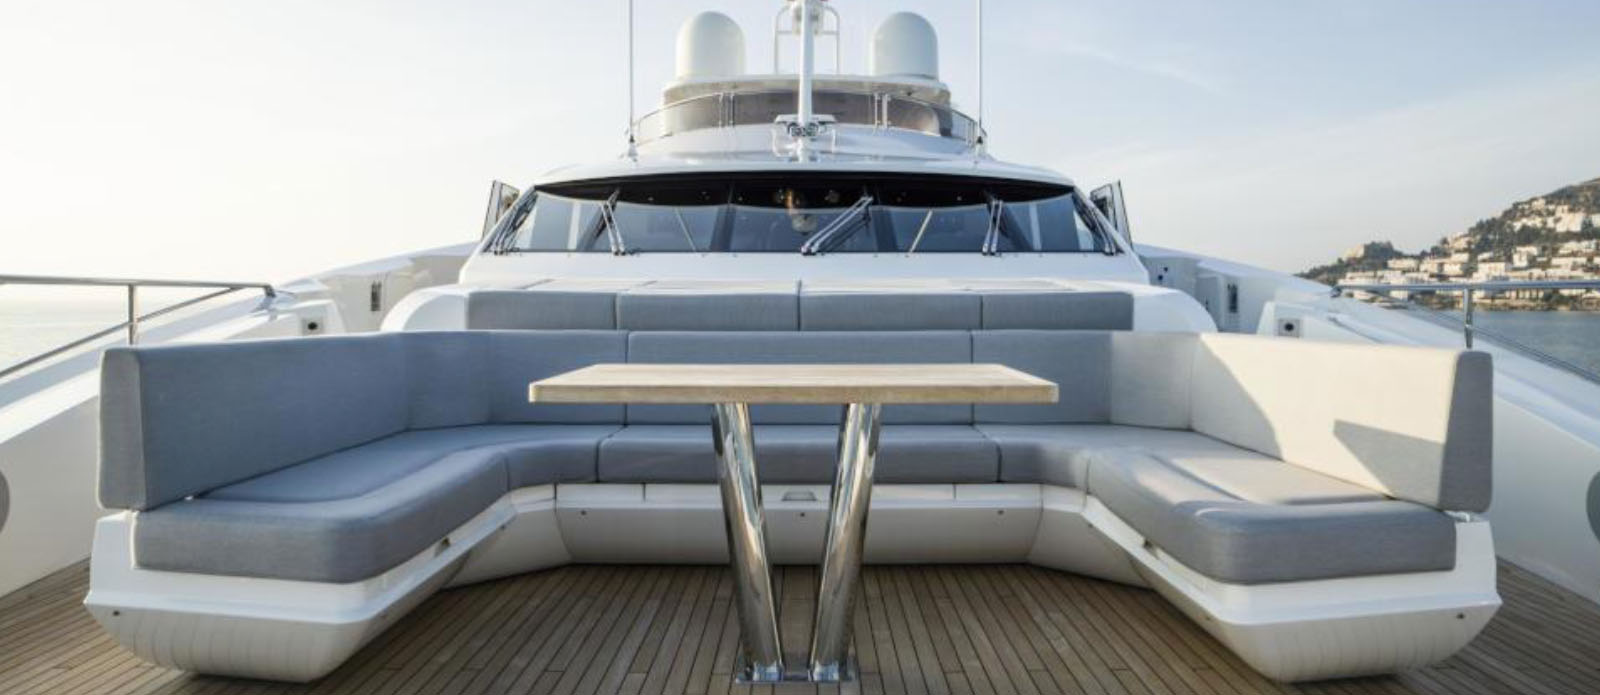 Berco-Voyager-Sunseeker-Bow-Seating